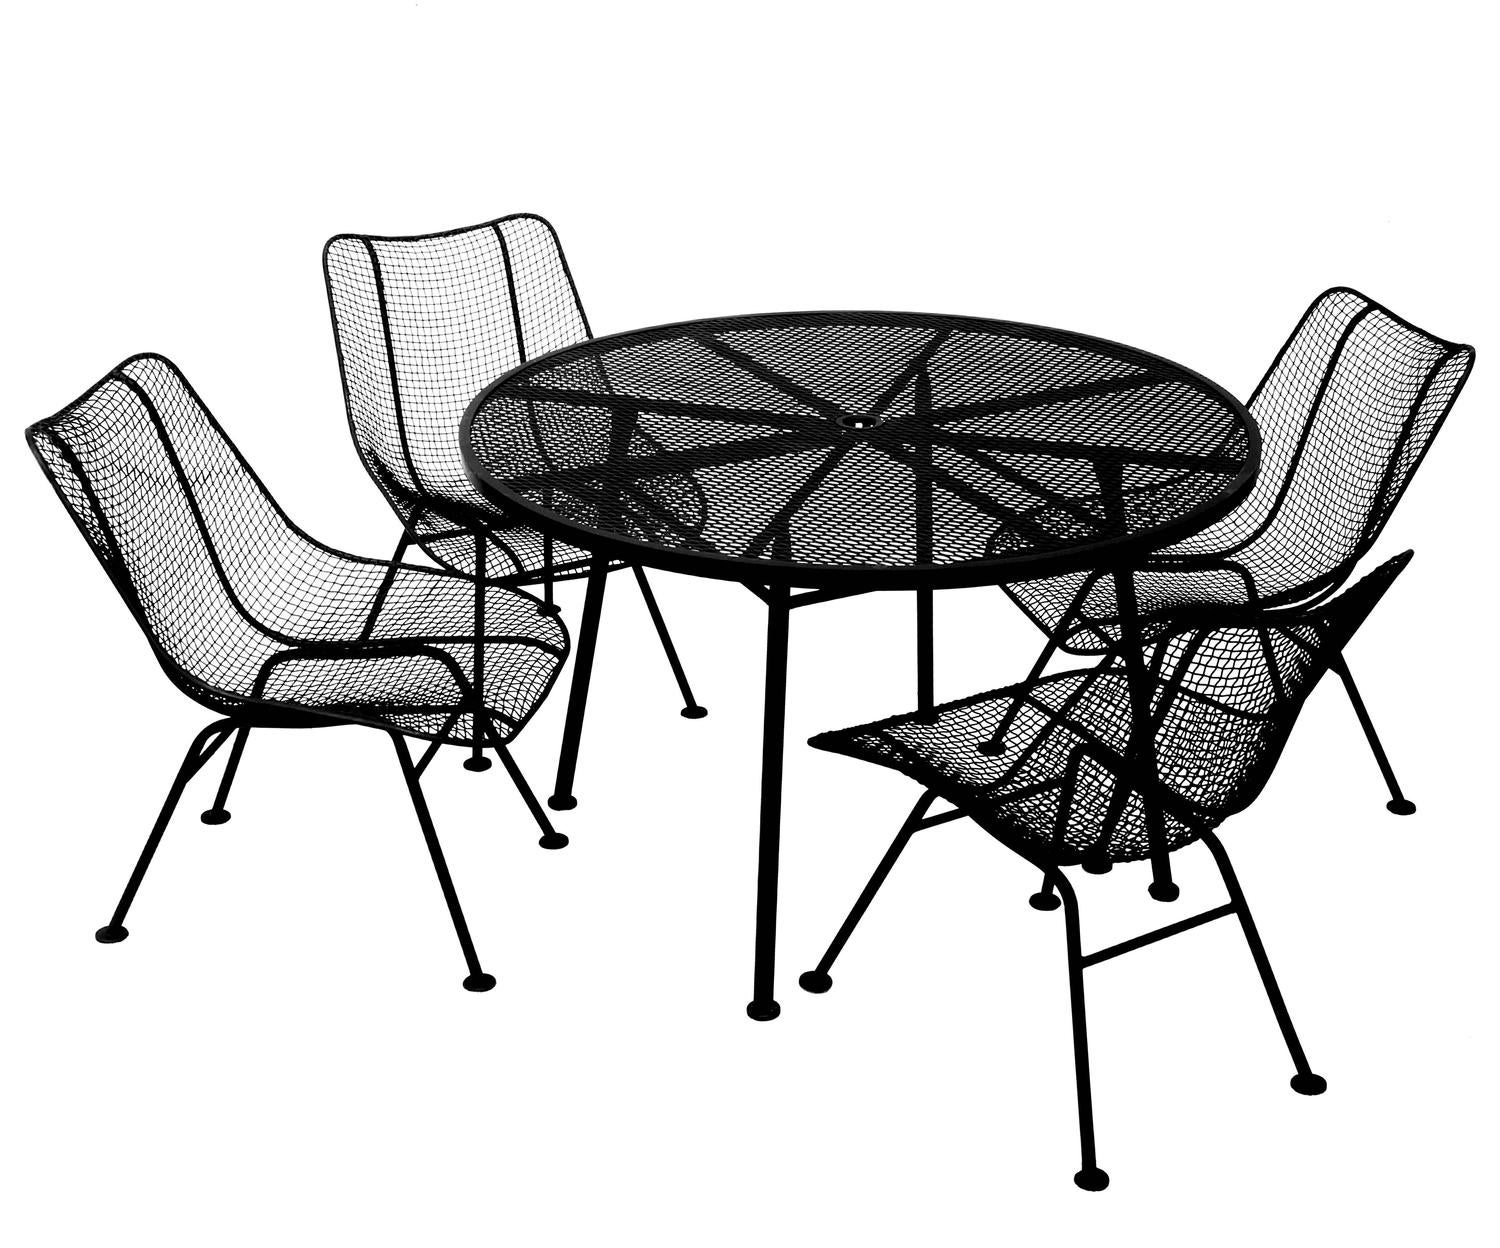 Outdoor Indoor Patio Dining Set Table And Four Chairs The Table